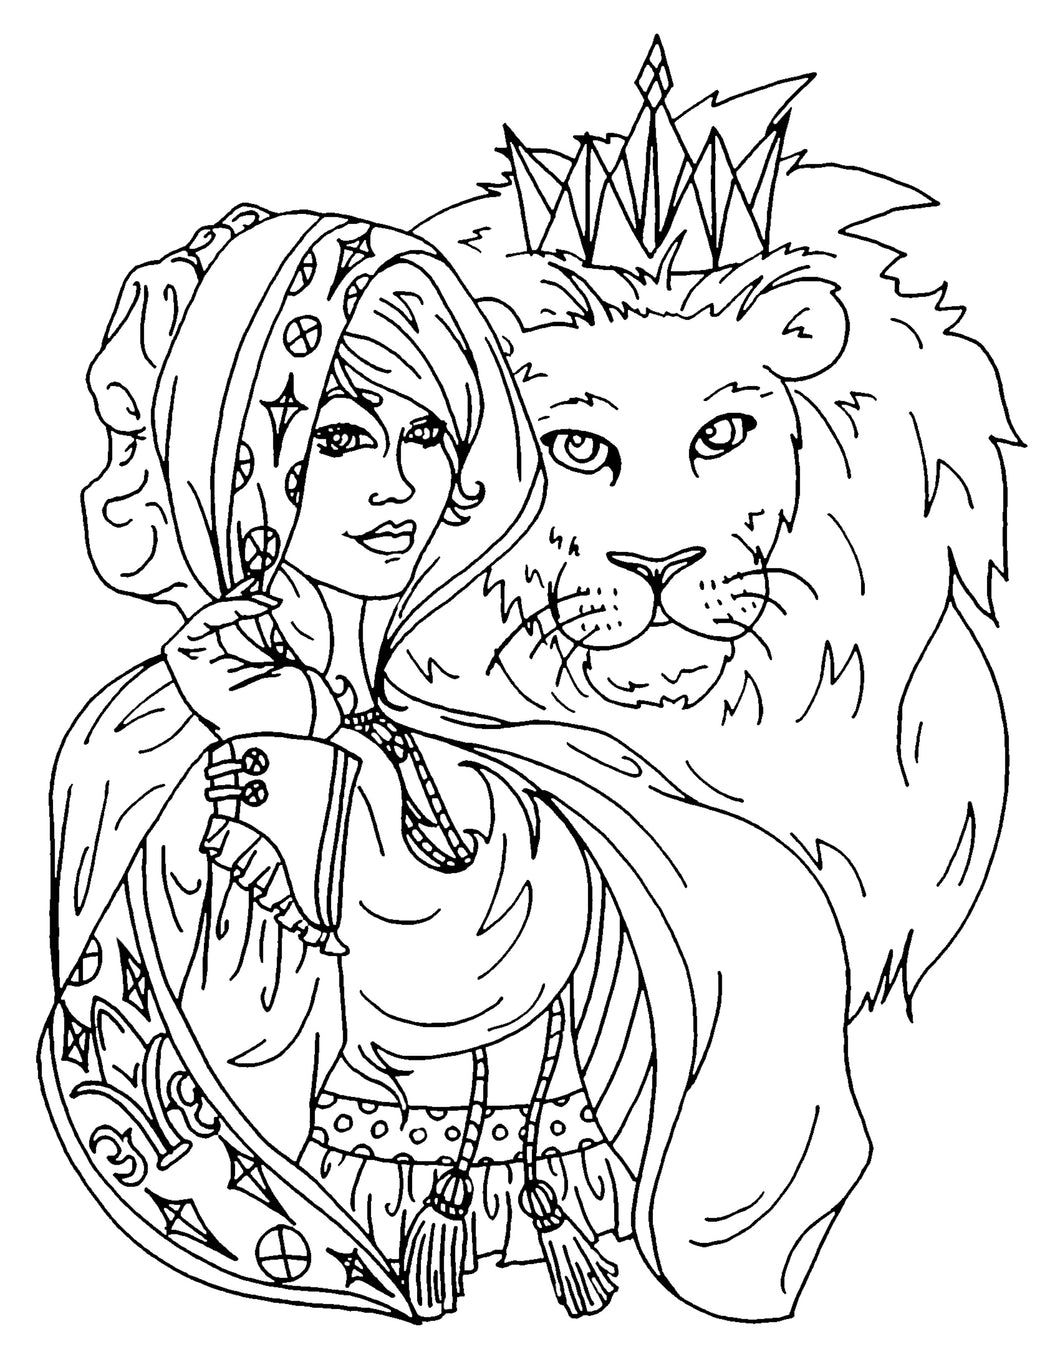 King of Kings Coloring Page